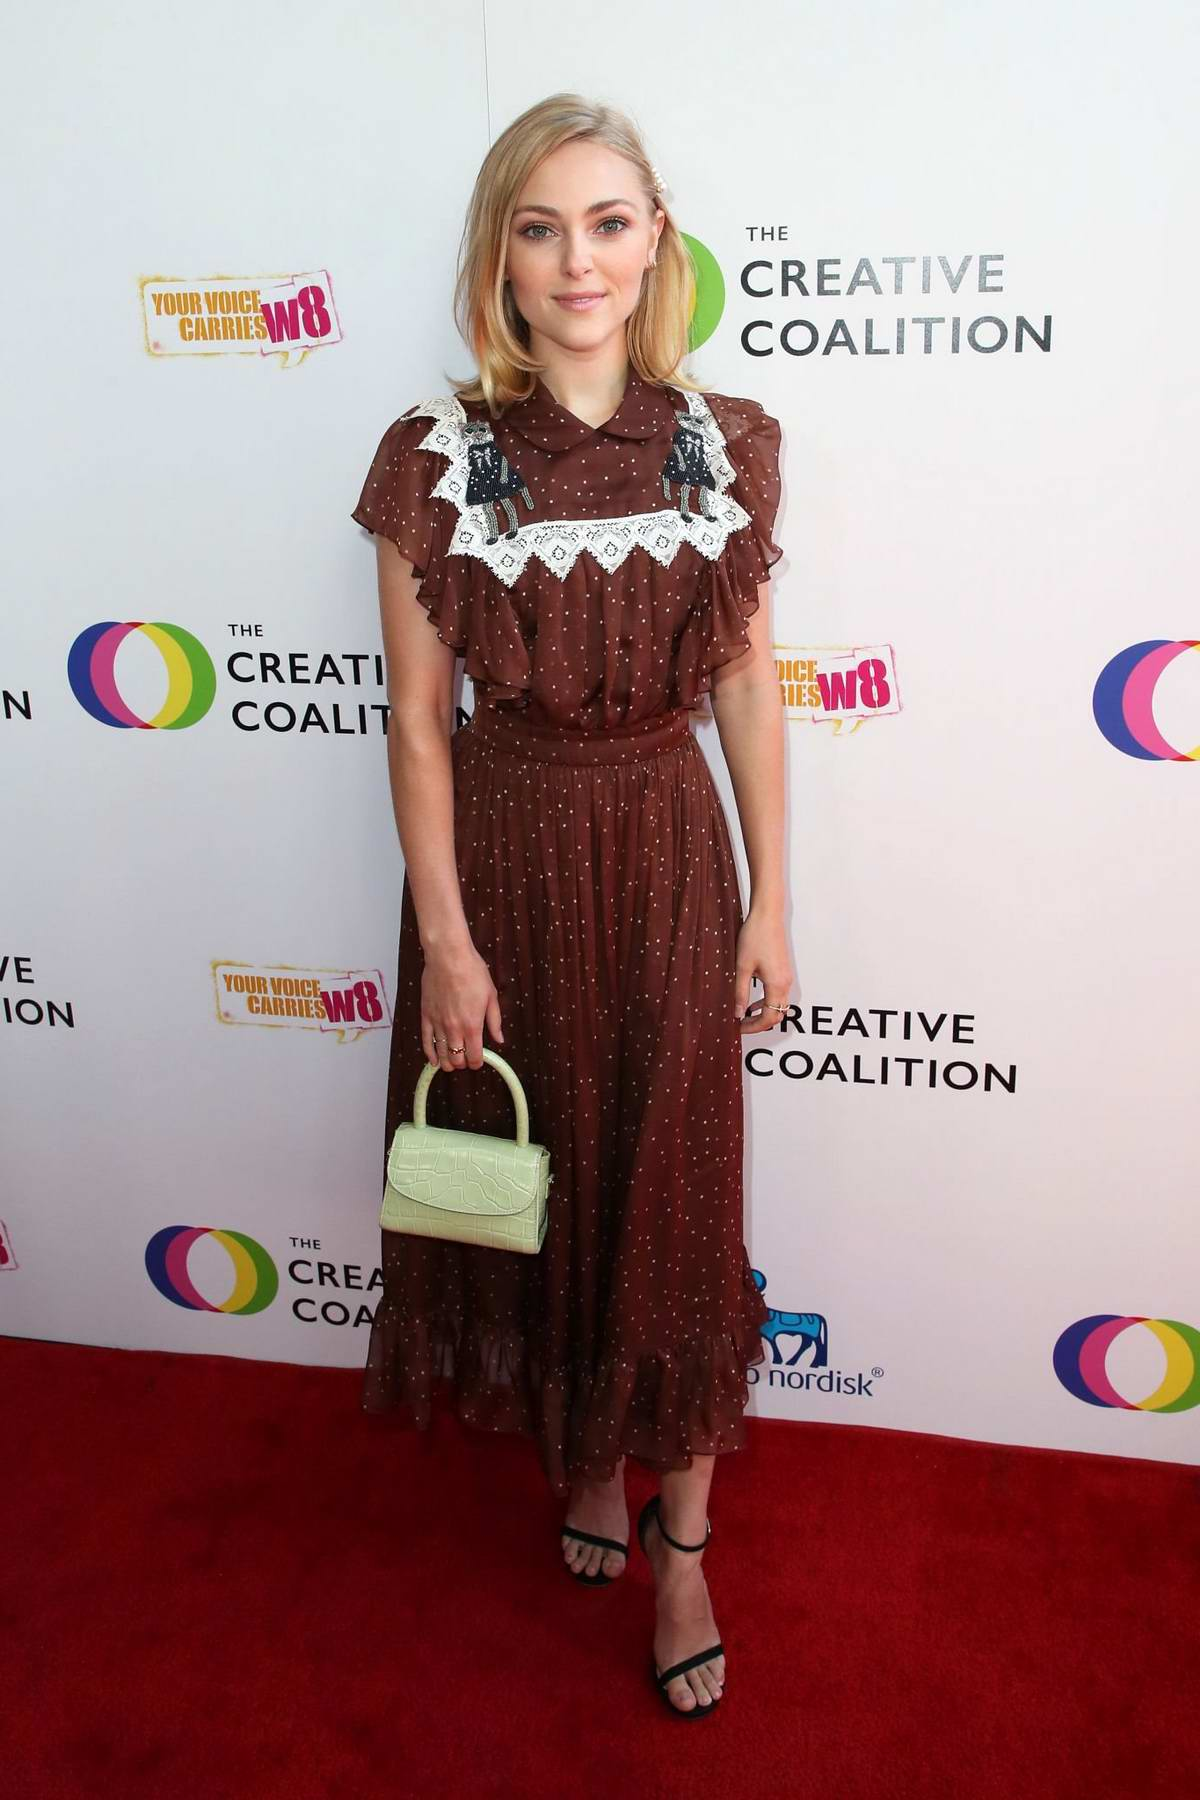 AnnaSophia Robb attends The Creative Coalition's Annual Television Humanitarian Awards Gala in Beverly Hills, Los Angeles